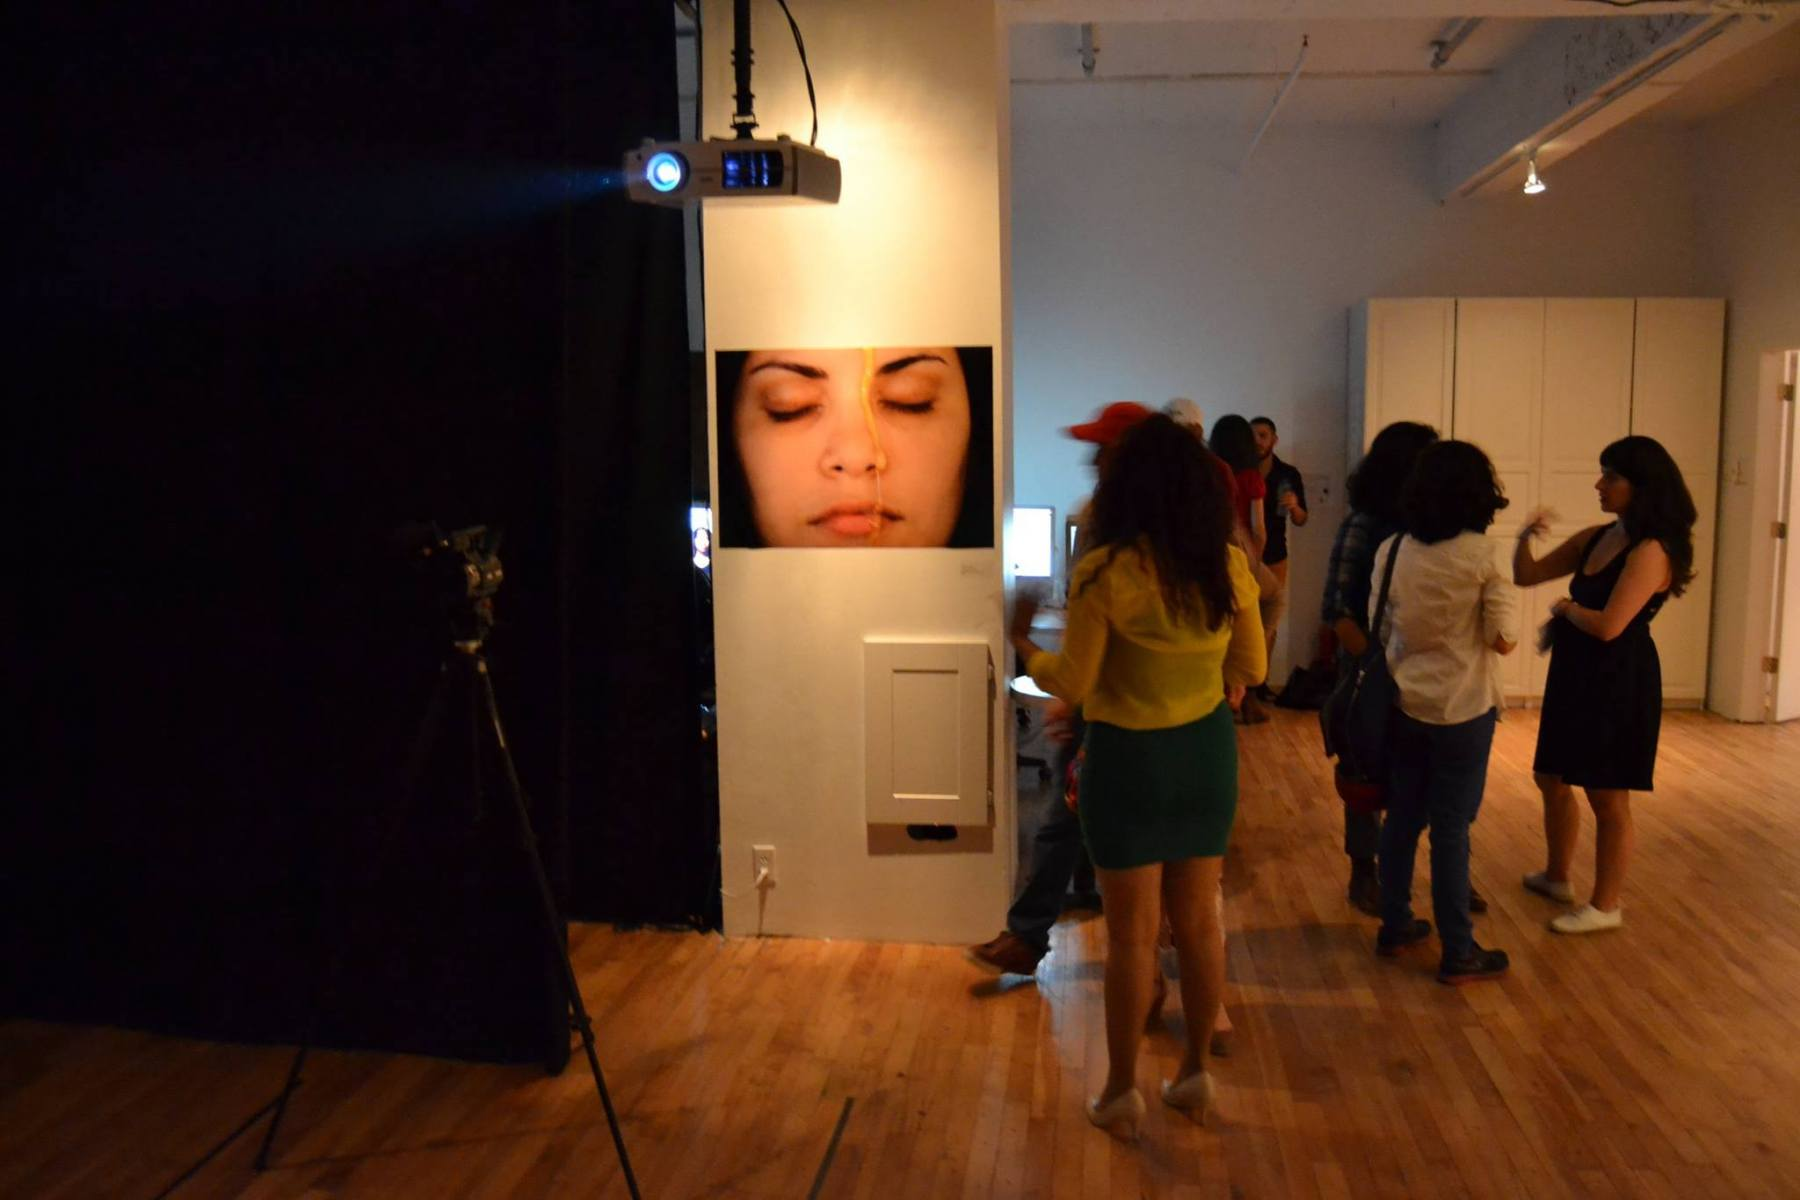 2. A drop of honey, 2013 - Performance, Opening (Naivy Perez)